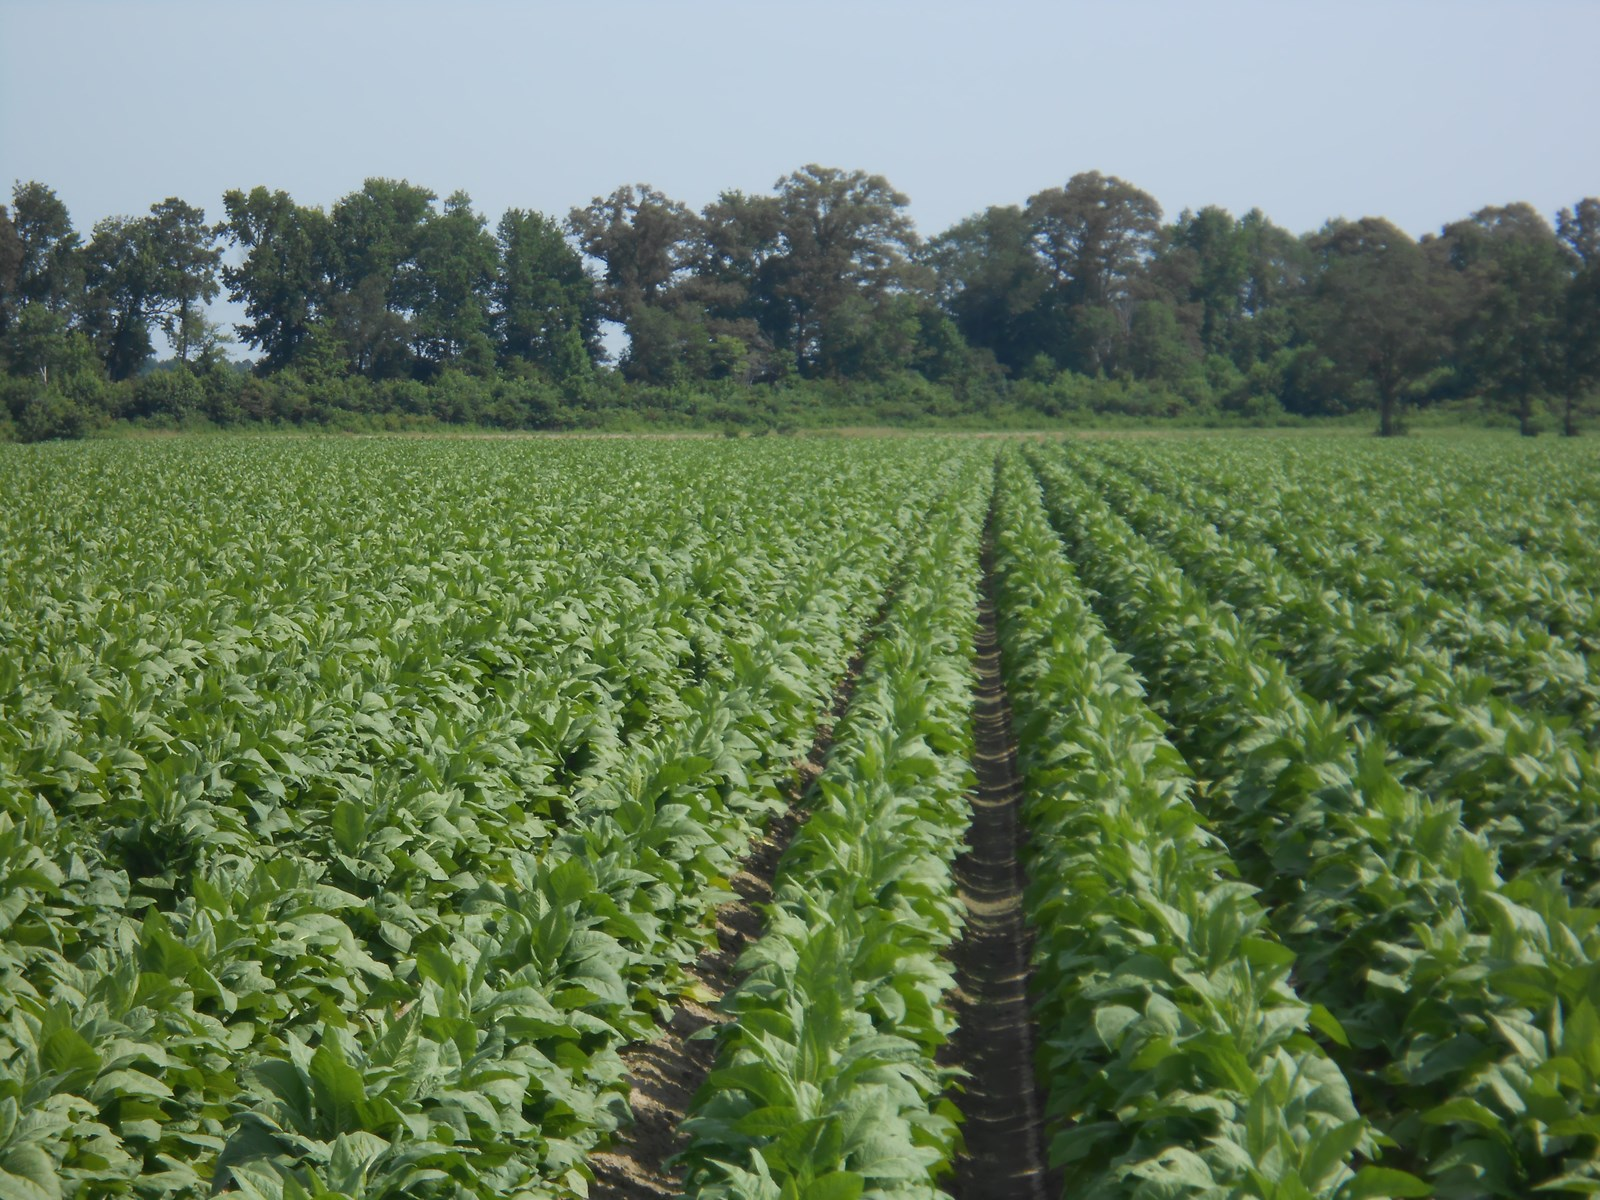 Farmland For Sale in Eastern NC, Martin County